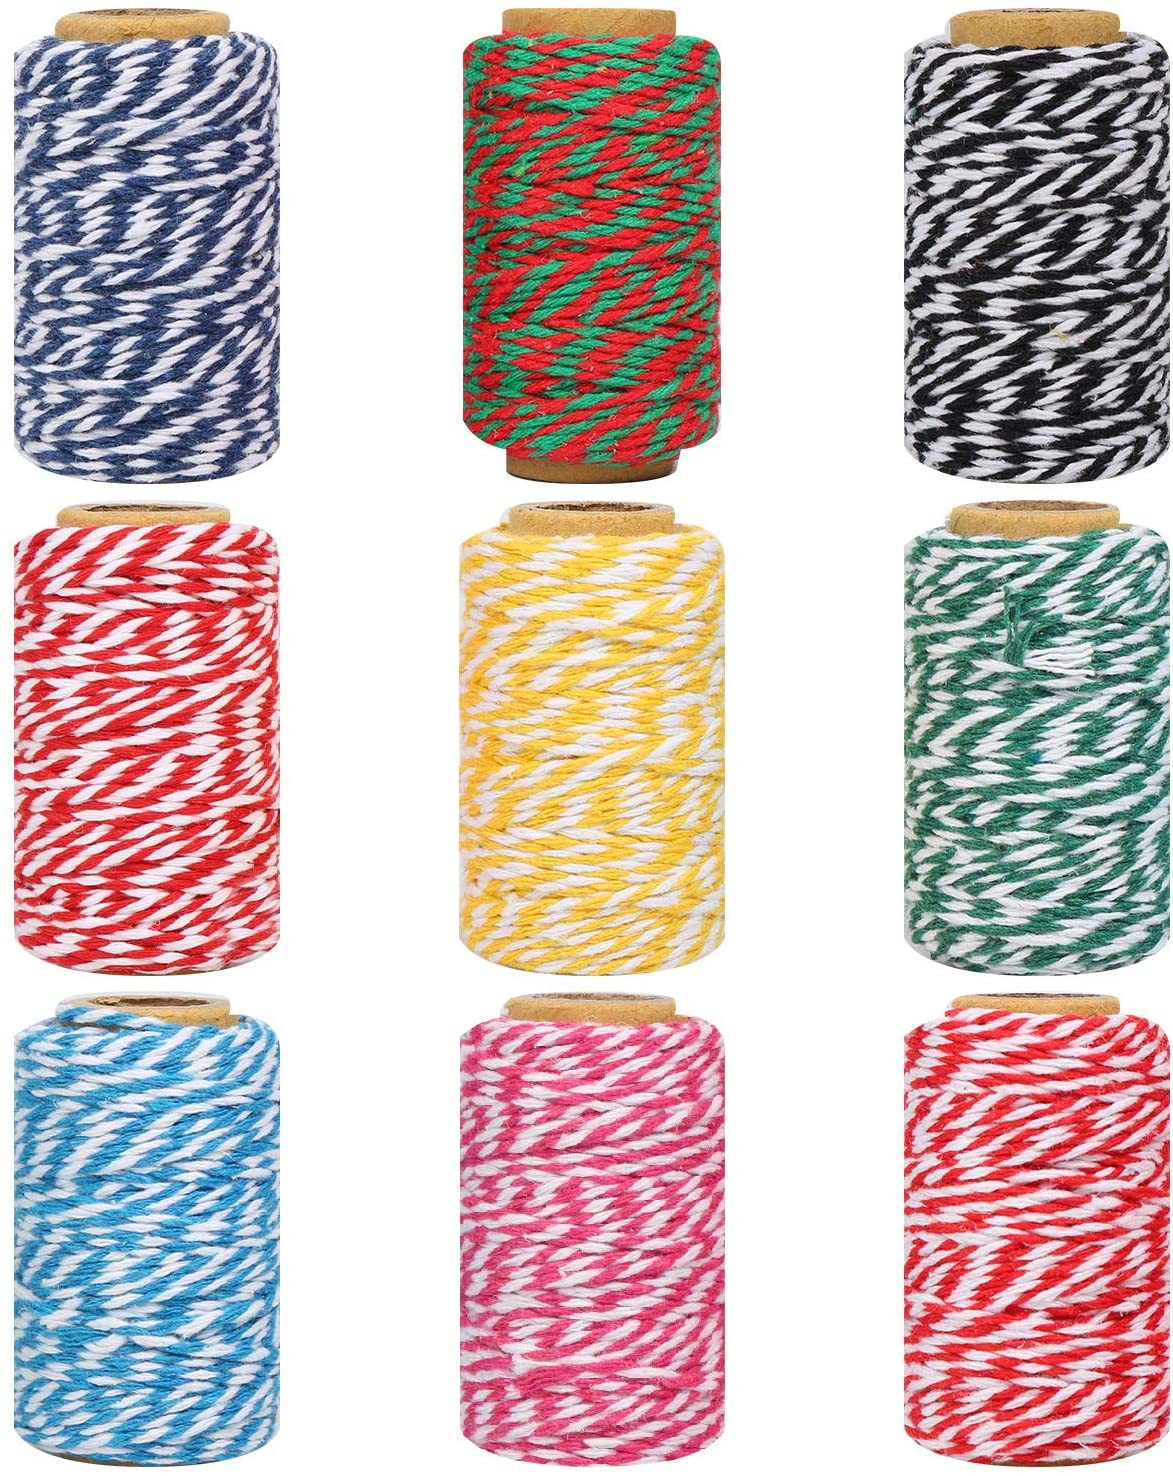 Maosifang 9 Colors Christmas Twine Cotton 2 mm String Rope Cord for Gift Wrapping Arts Crafts Party Decorations Gardening,9 Rolls